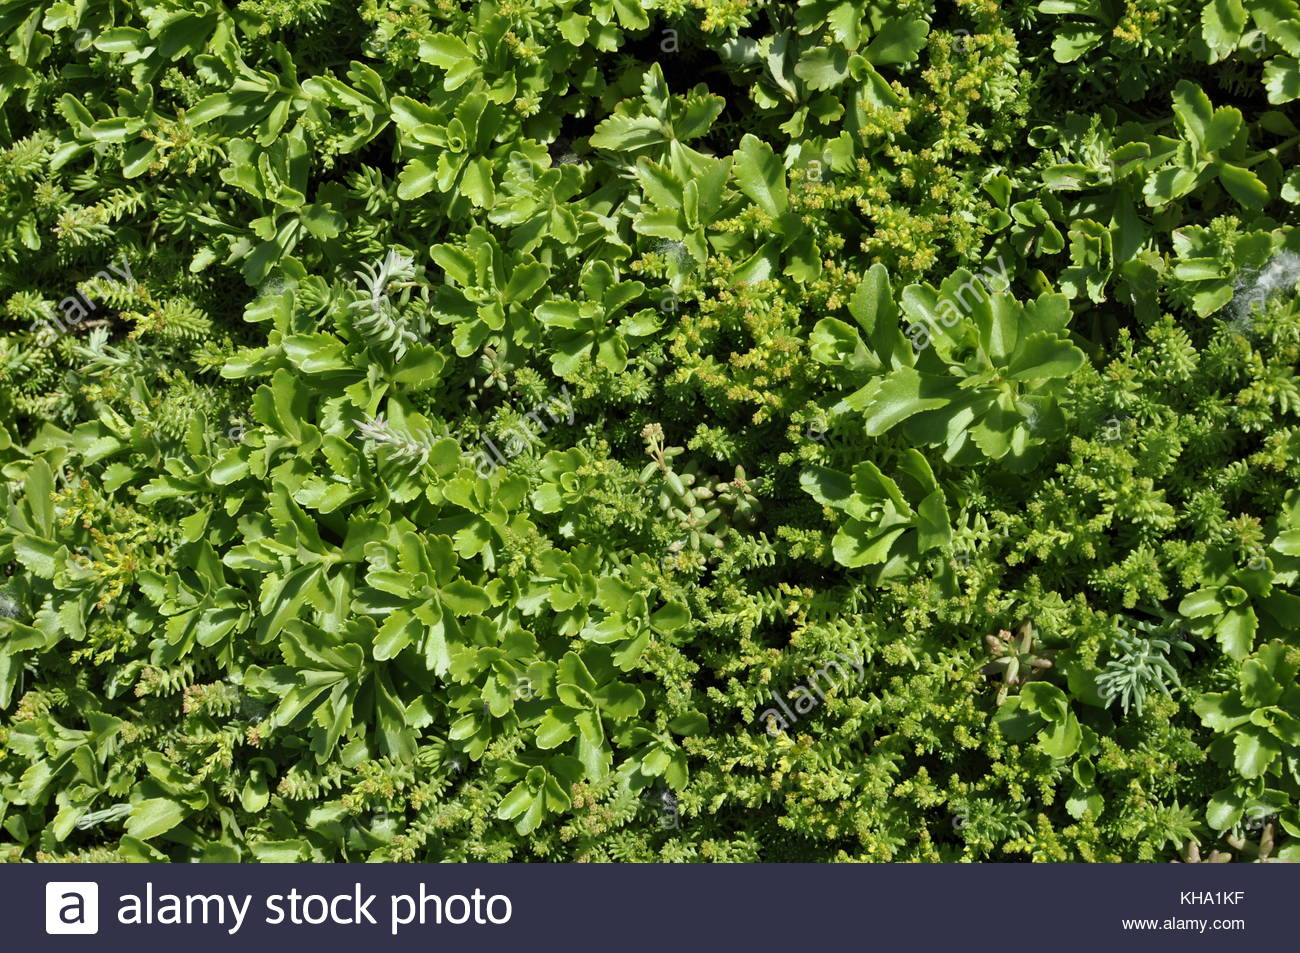 Sedums Stock Photos Amp Sedums Stock Images Alamy